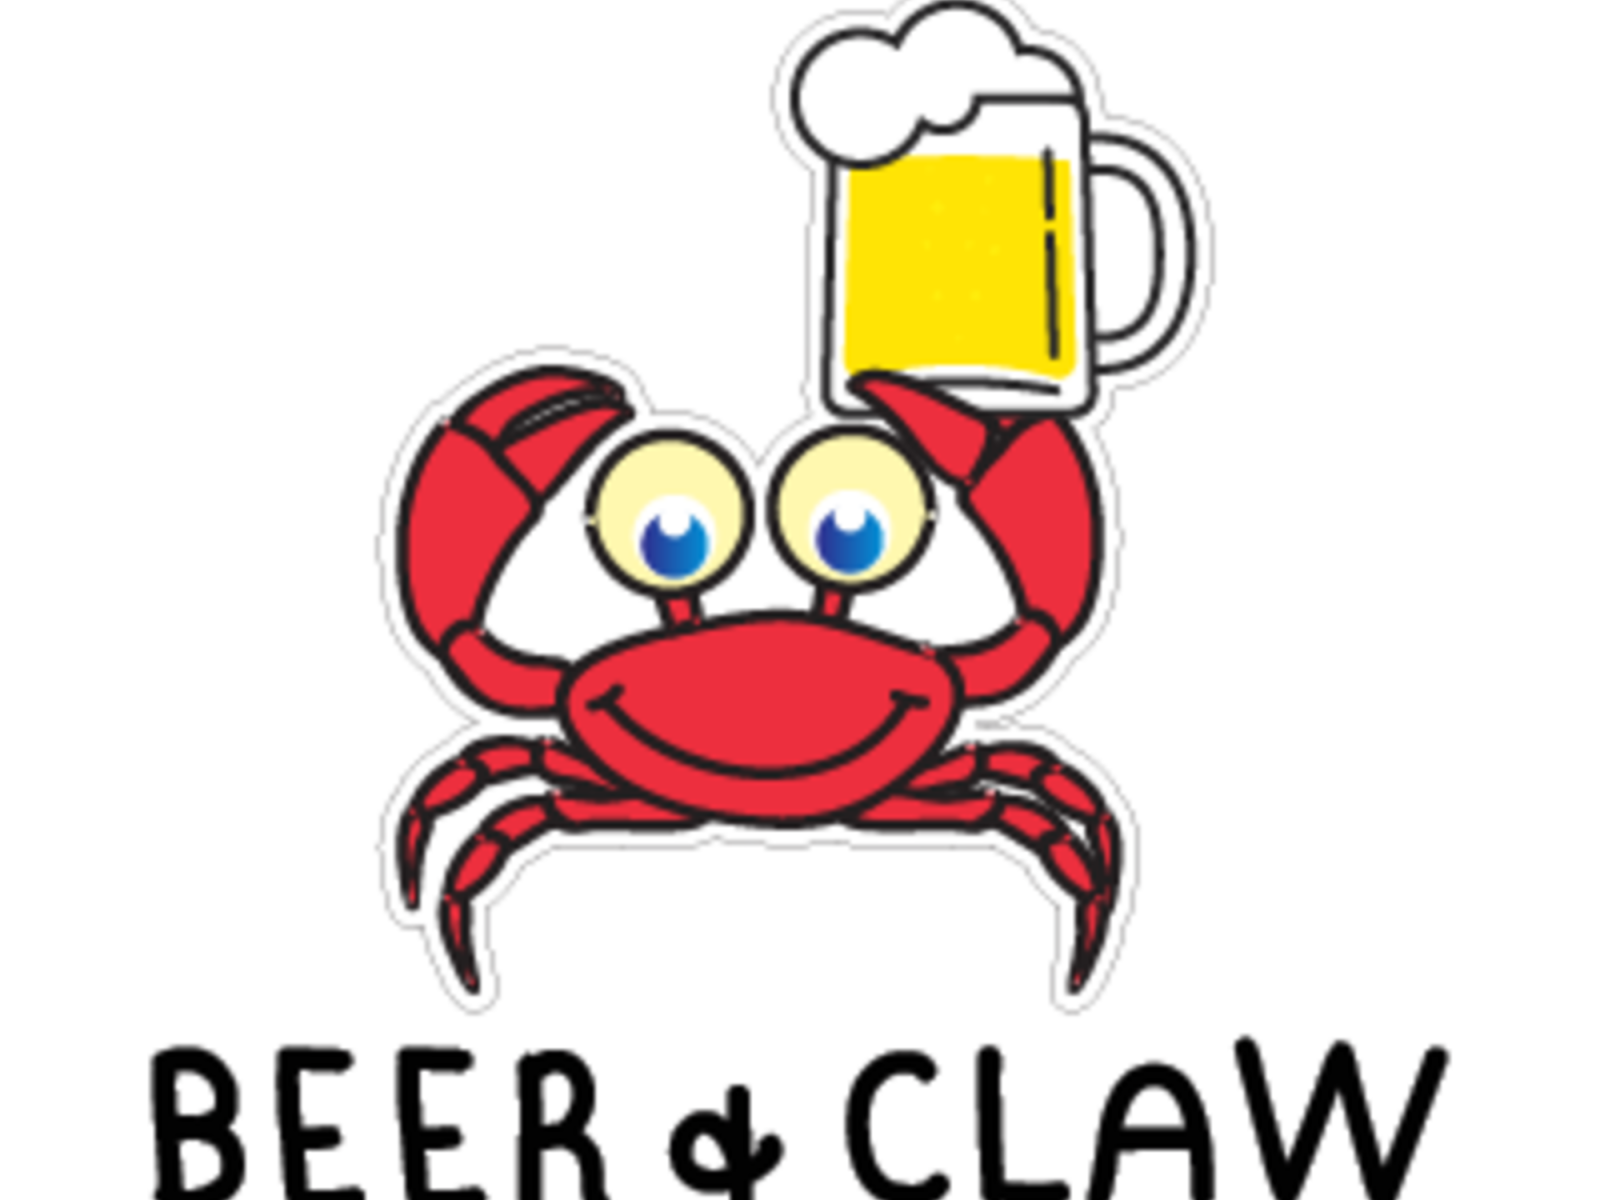 Beer & Claw